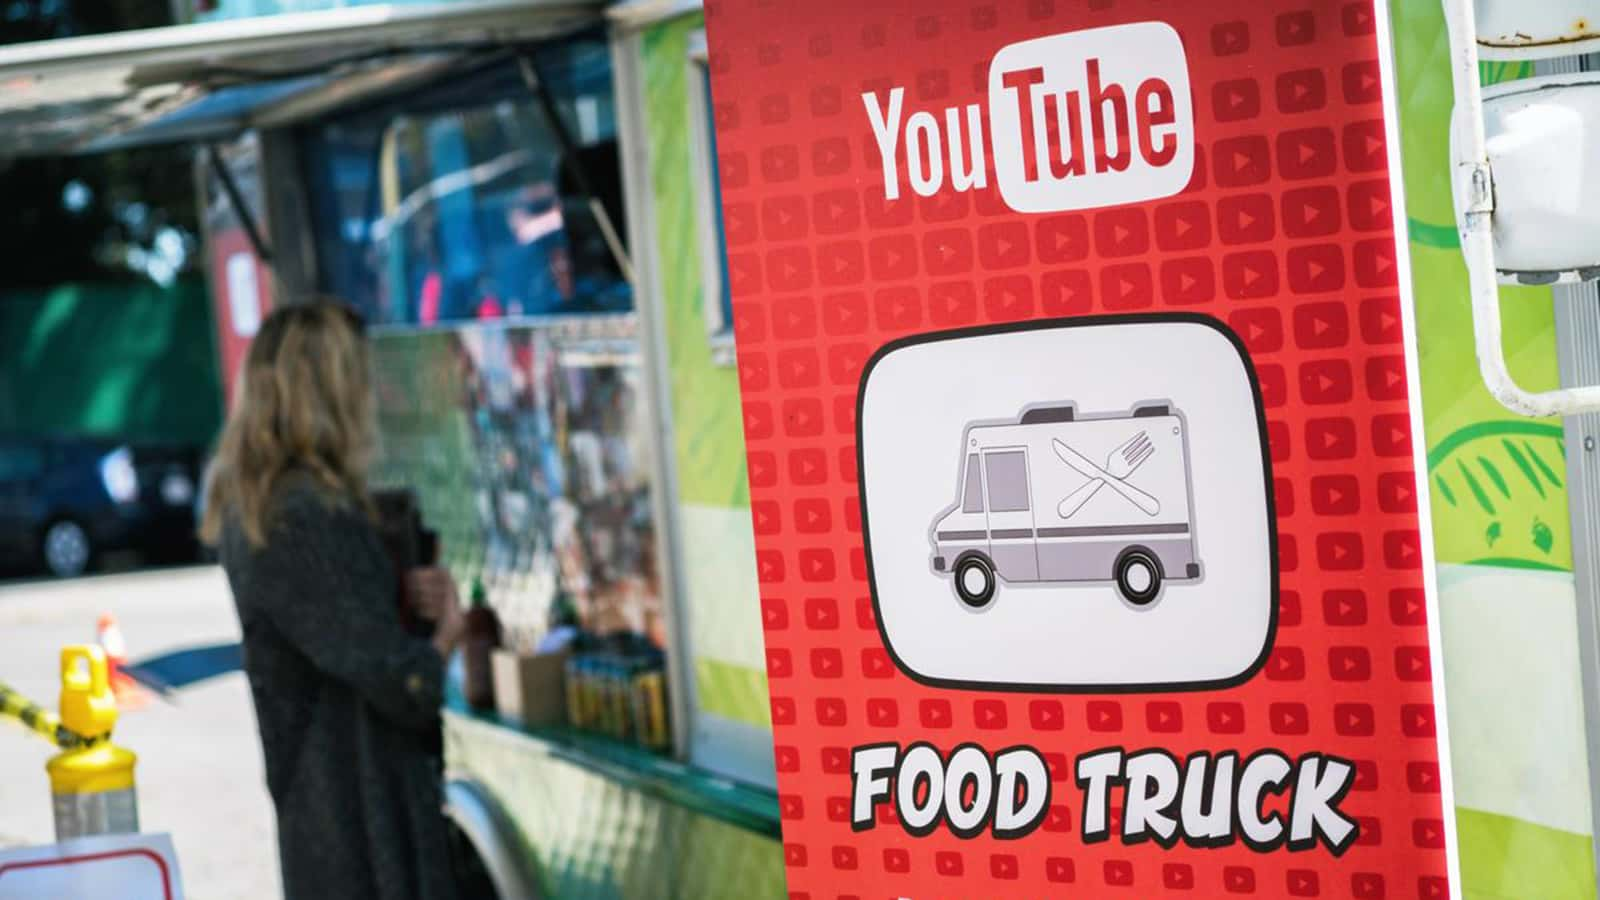 YouTube food truck at the YouTube Community Contributors Summit 2016.